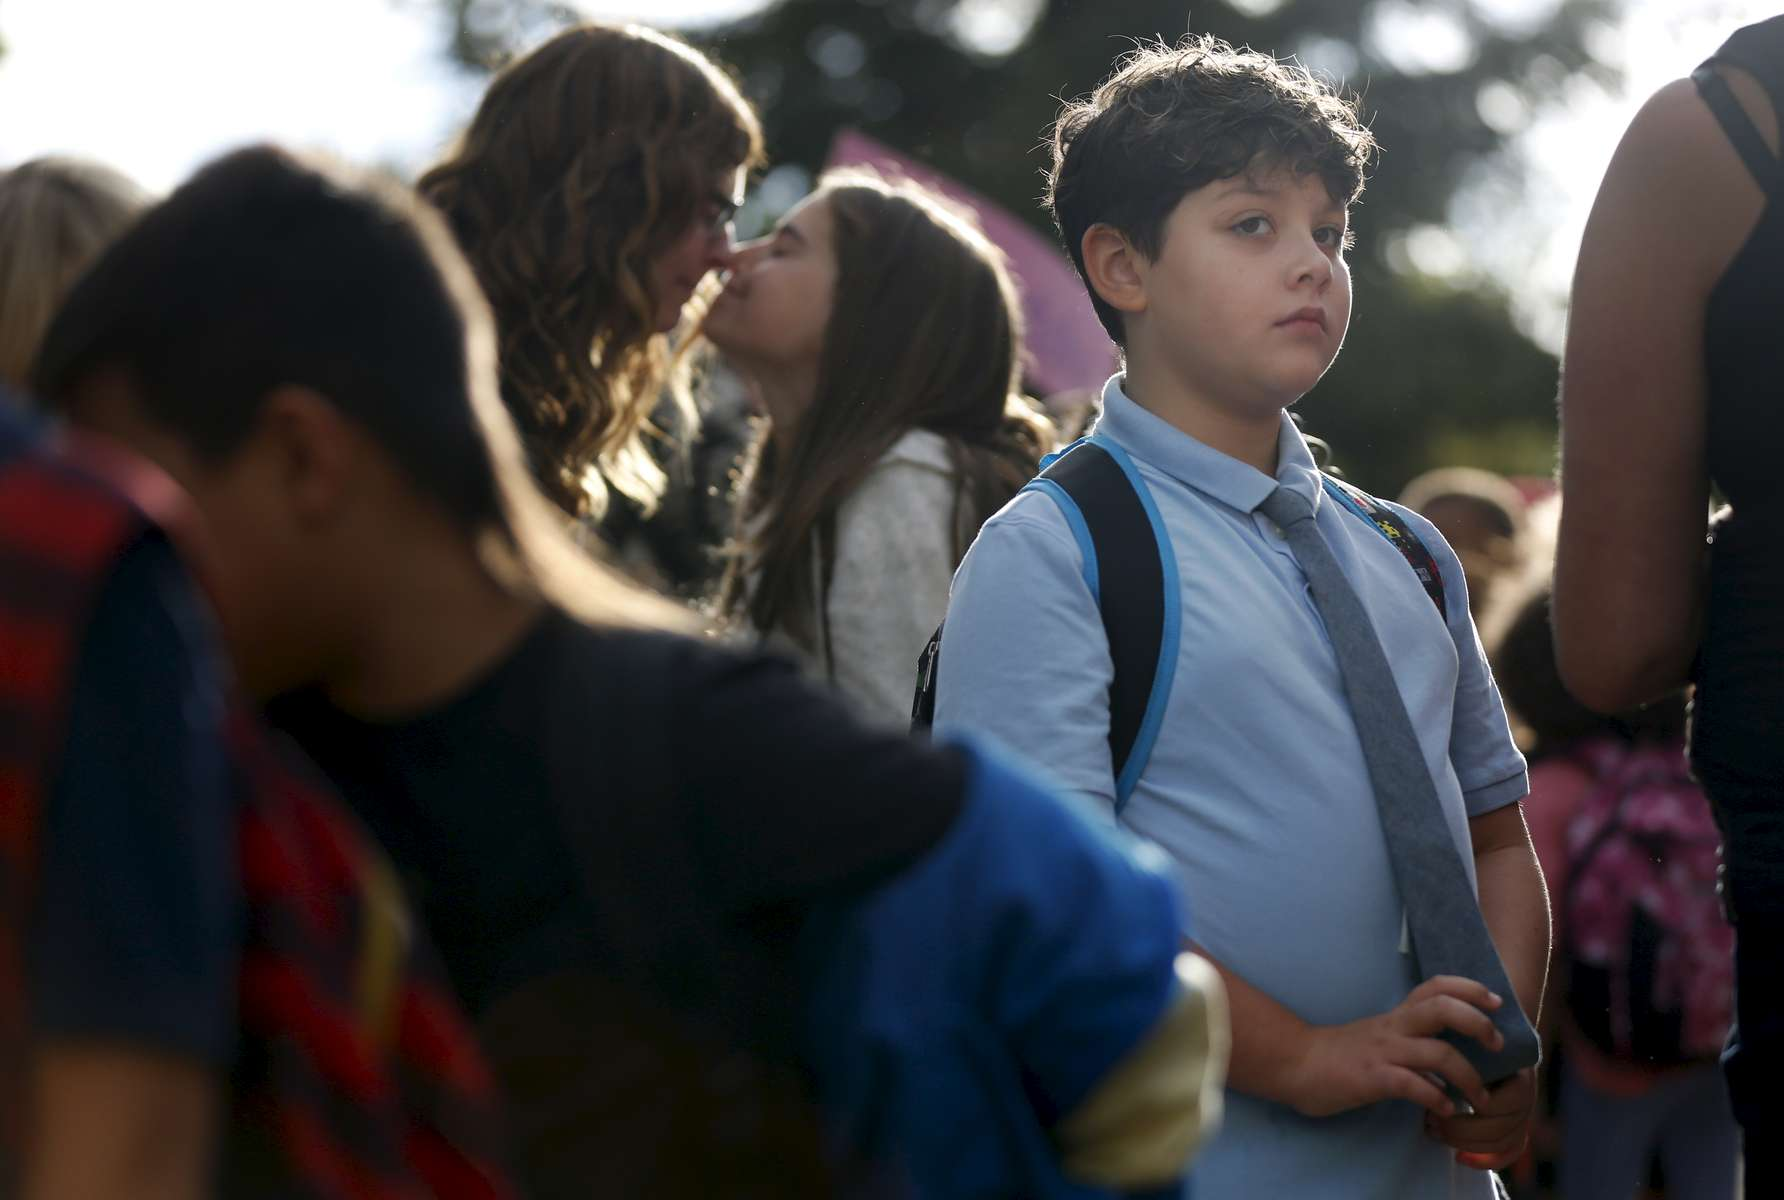 James, 9, navigates adolescence as a transgender boy with the help of his friends, family and community.